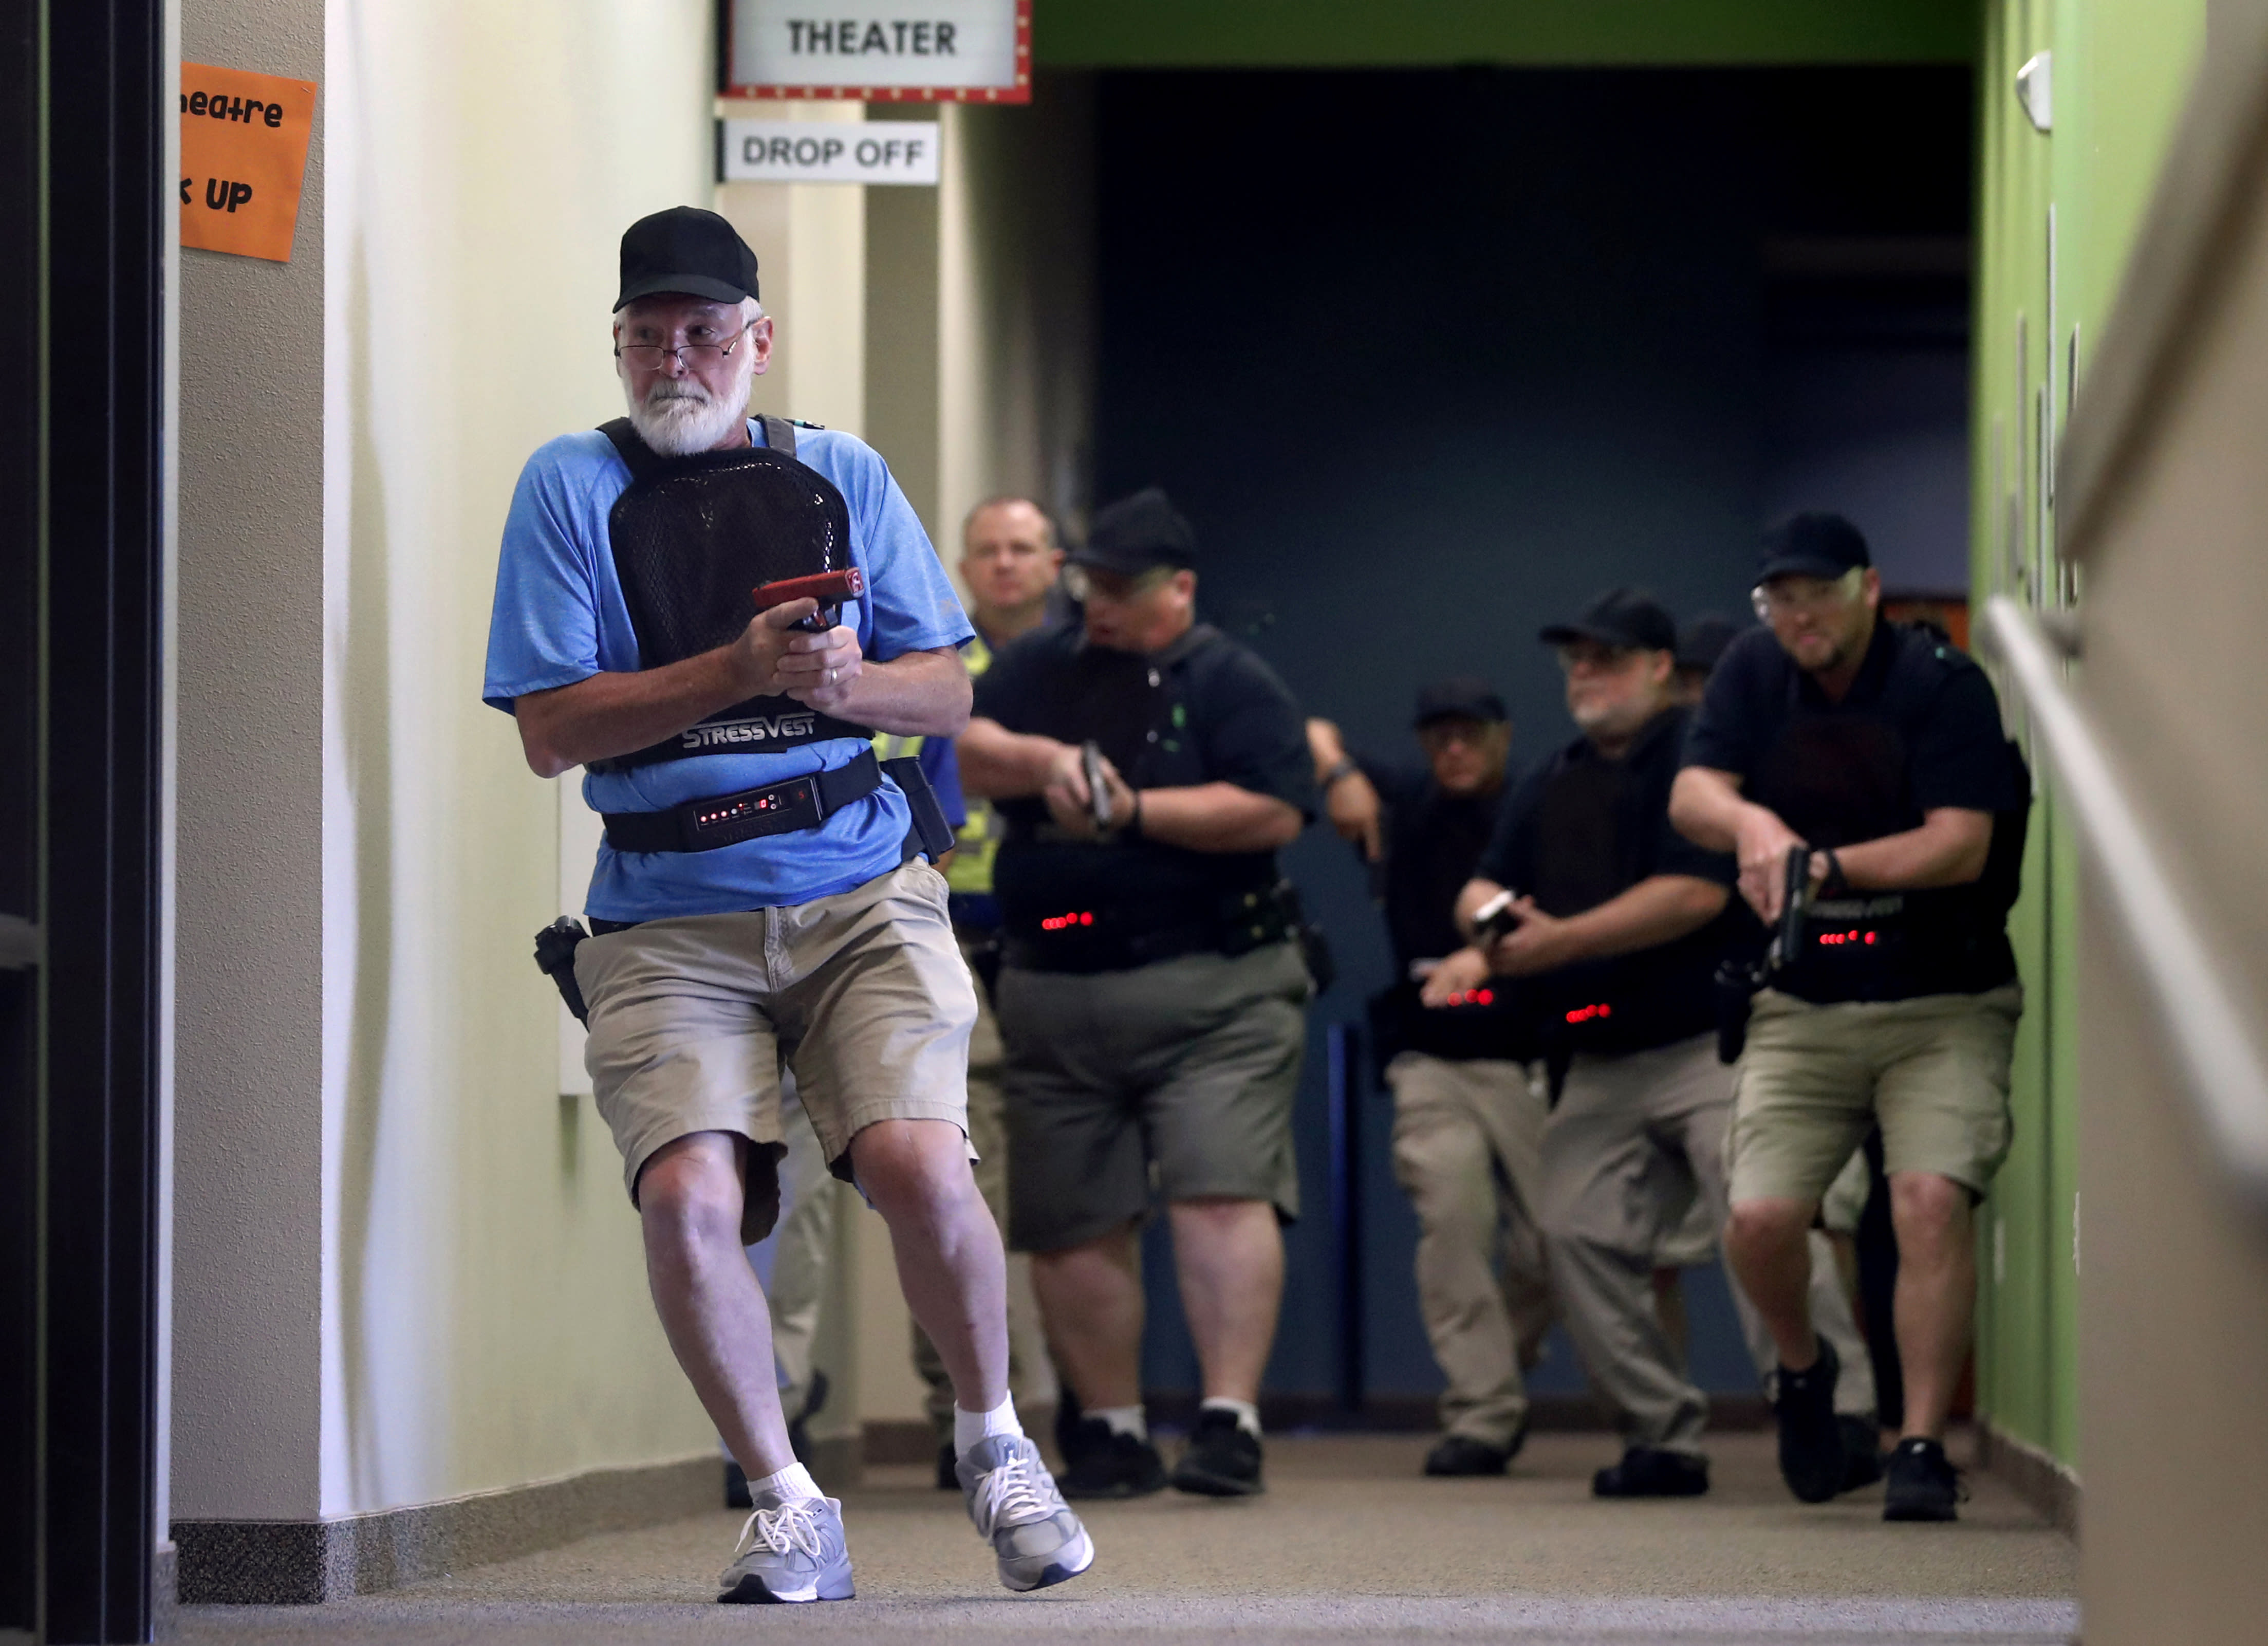 In this July 21, 2019 photo, Stephen Hatherley, left, leads fellow trainees down a hallway as they participate in a simulated gun fight scenario at Fellowship of the Parks campus in Haslet, Texas. While recent mass shootings occurred at a retail store in El Paso, Texas, and a downtown entertainment district in Dayton, Ohio, they were still felt in houses of worship, which haven't been immune to such attacks. And some churches have started protecting themselves with guns. (AP Photo/Tony Gutierrez)